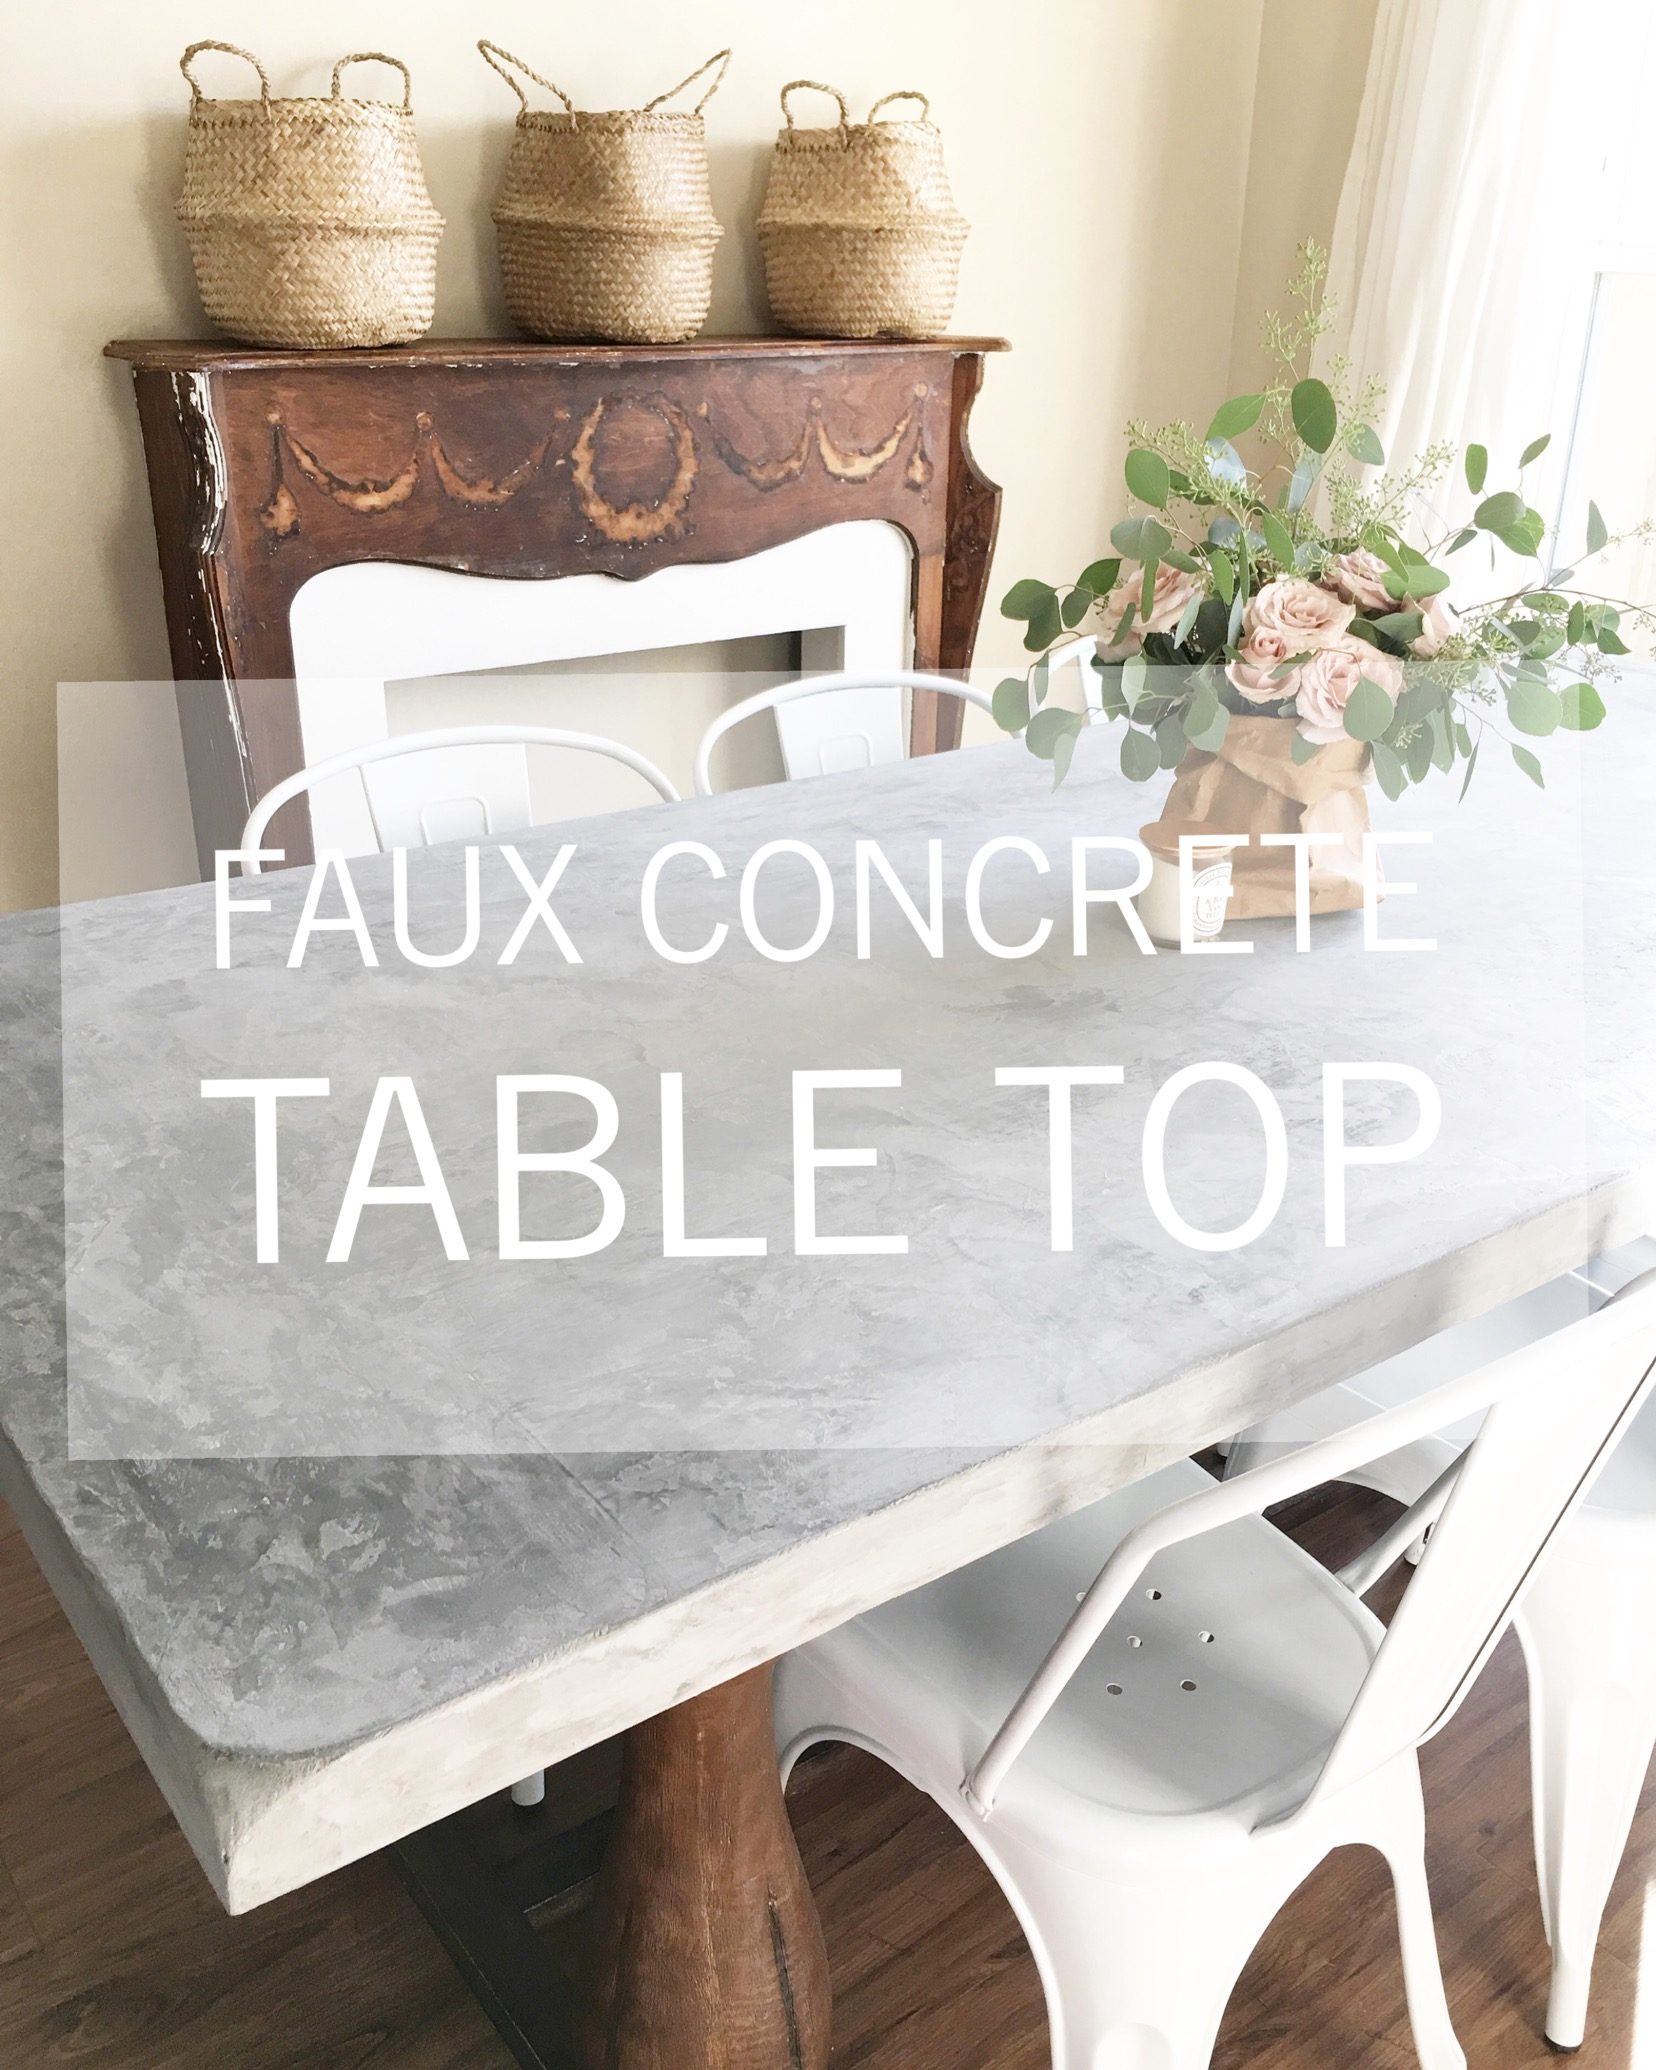 Charmant Faux Concrete Table Top Using Marrakech Paint (Pureu0026Original)